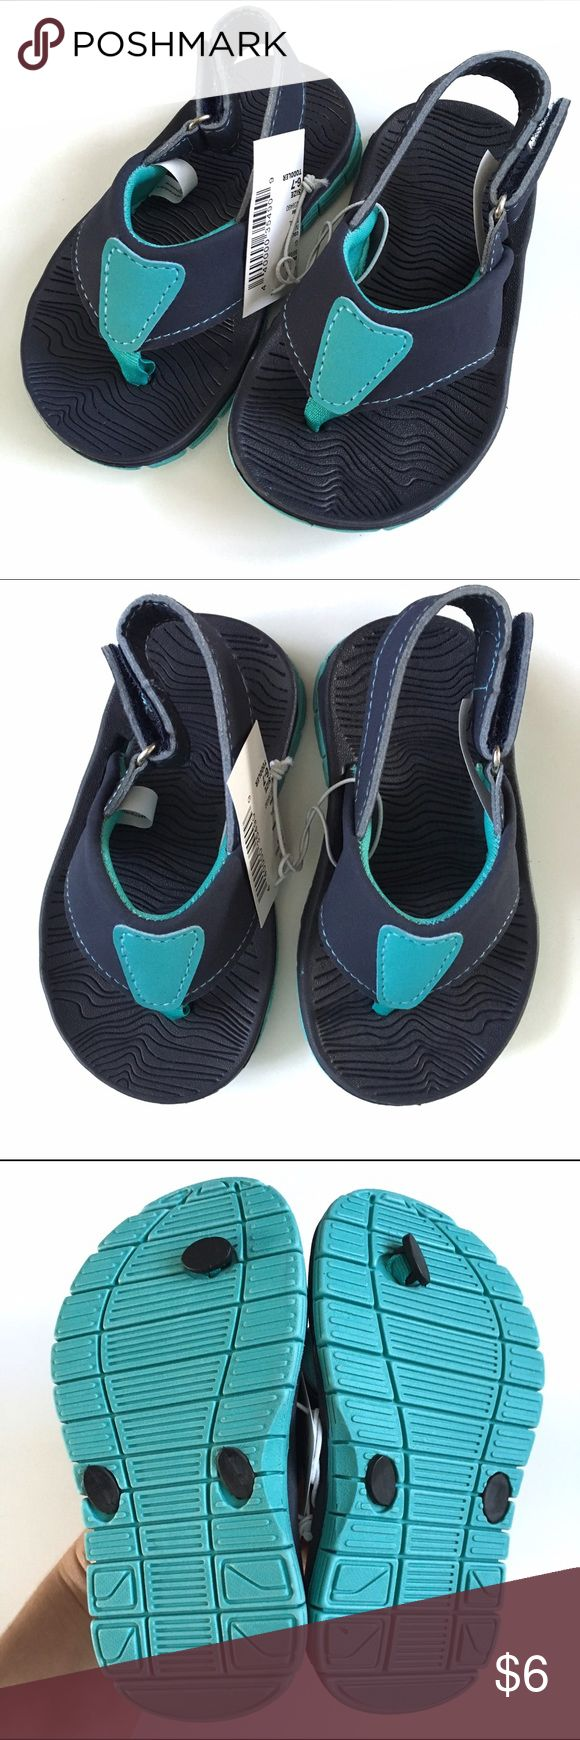 🚀 NWT Children's Place Flip Flops 🚀 NWT Children's Place Boys Flip Flops. Toddler size 6/7. In navy and blue with ribbed soles and velcro strap at ankle.❗️Must be Bundled❗️ Children's Place Shoes Sandals & Flip Flops